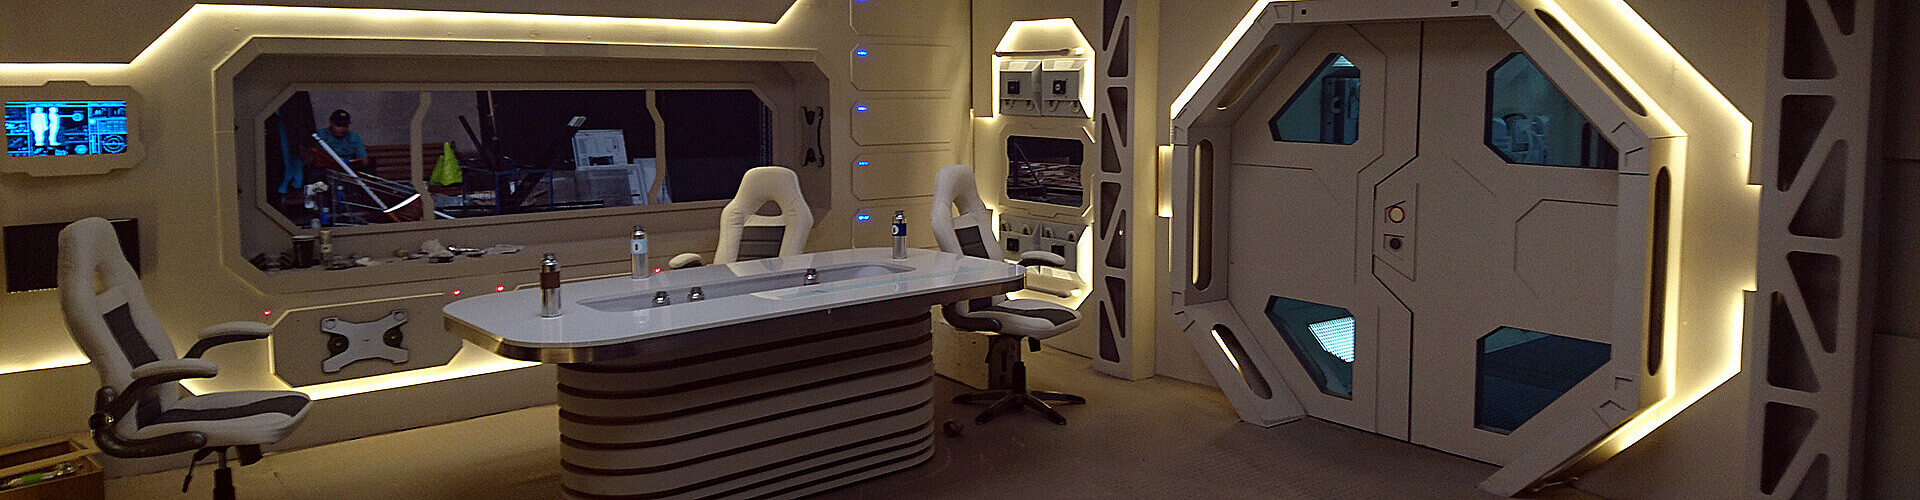 Set Decorations Of The Spaceship Portfolio Of Production Designer Aleksey Velichko